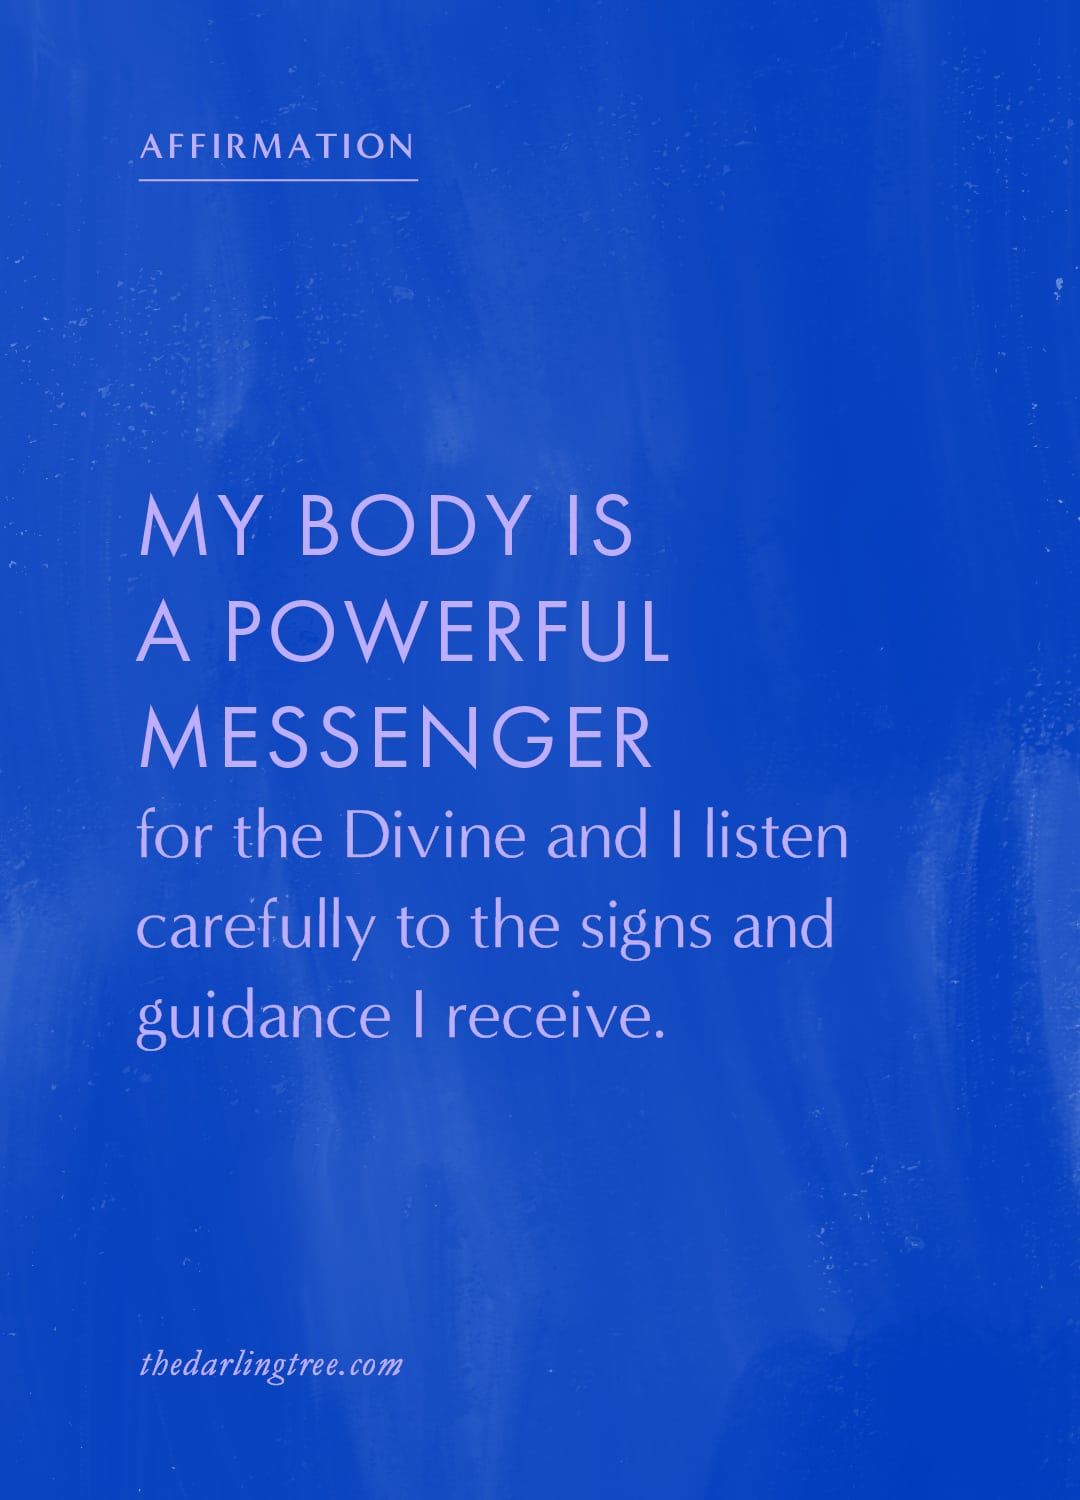 My body is a powerful messenger